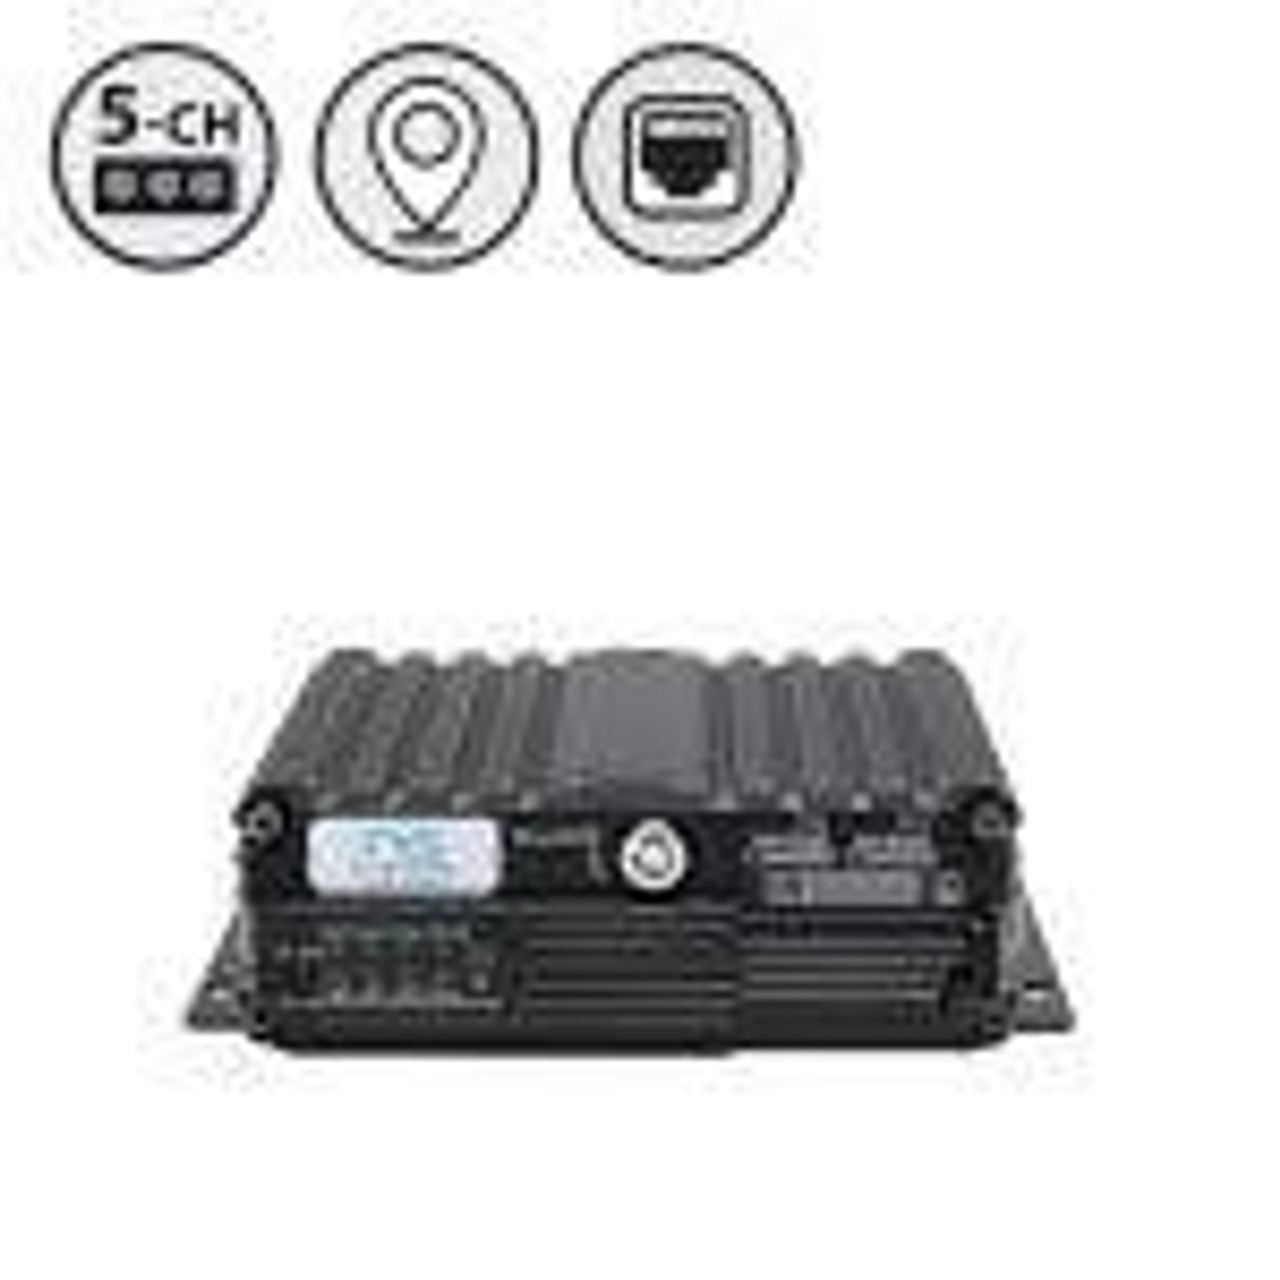 MobileMule™ 5500 | 5 Channel Mobile DVR with GPS (SD)